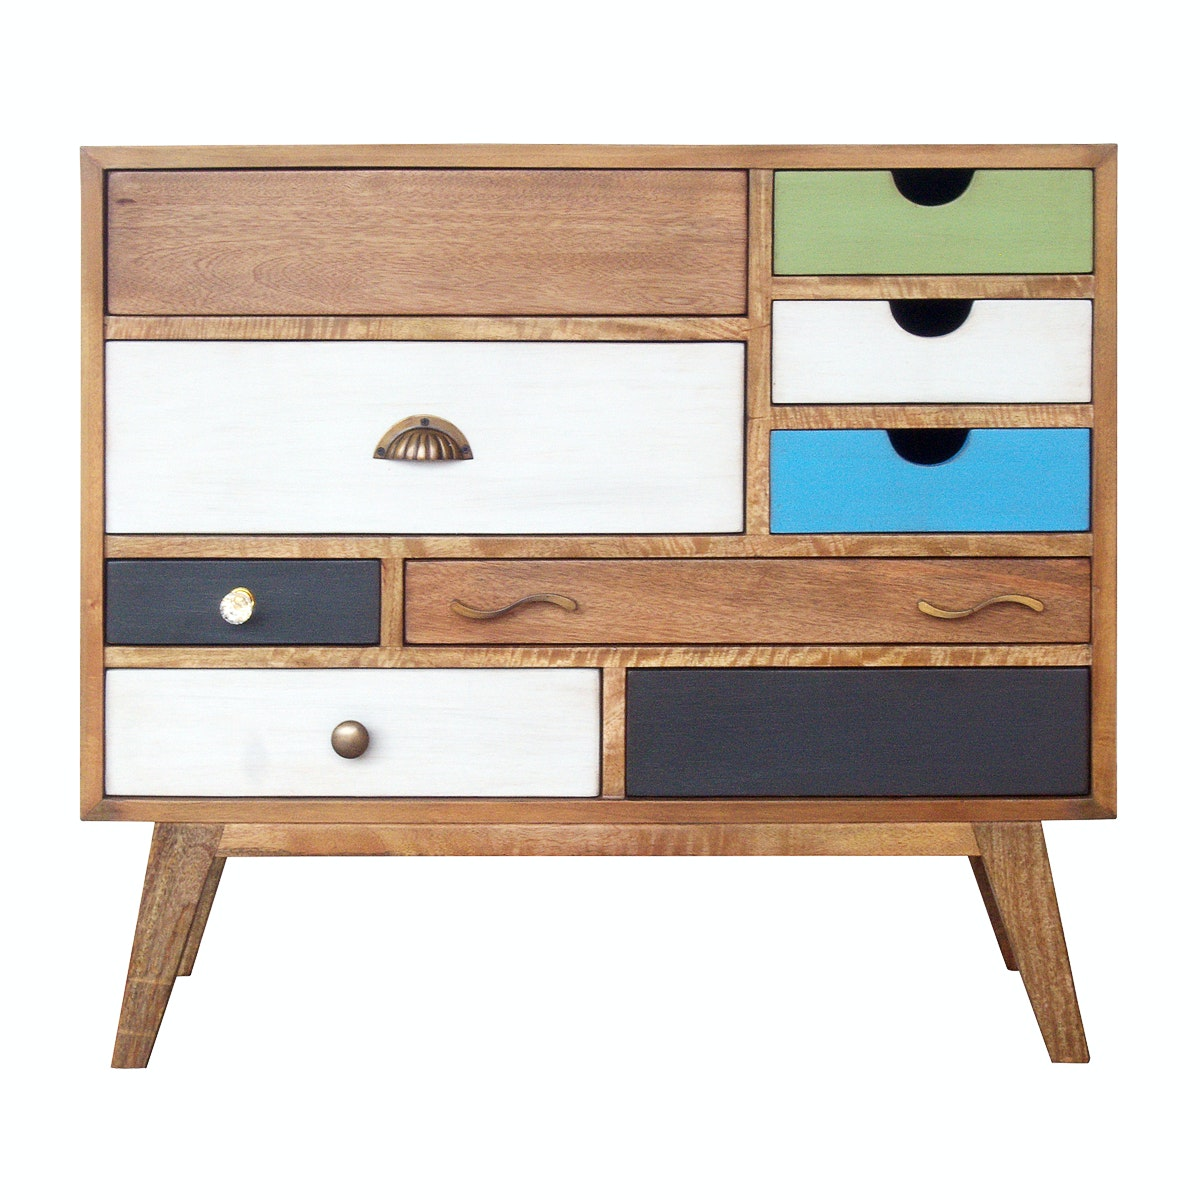 Alegre Rainbow Small Cabinet With Legs